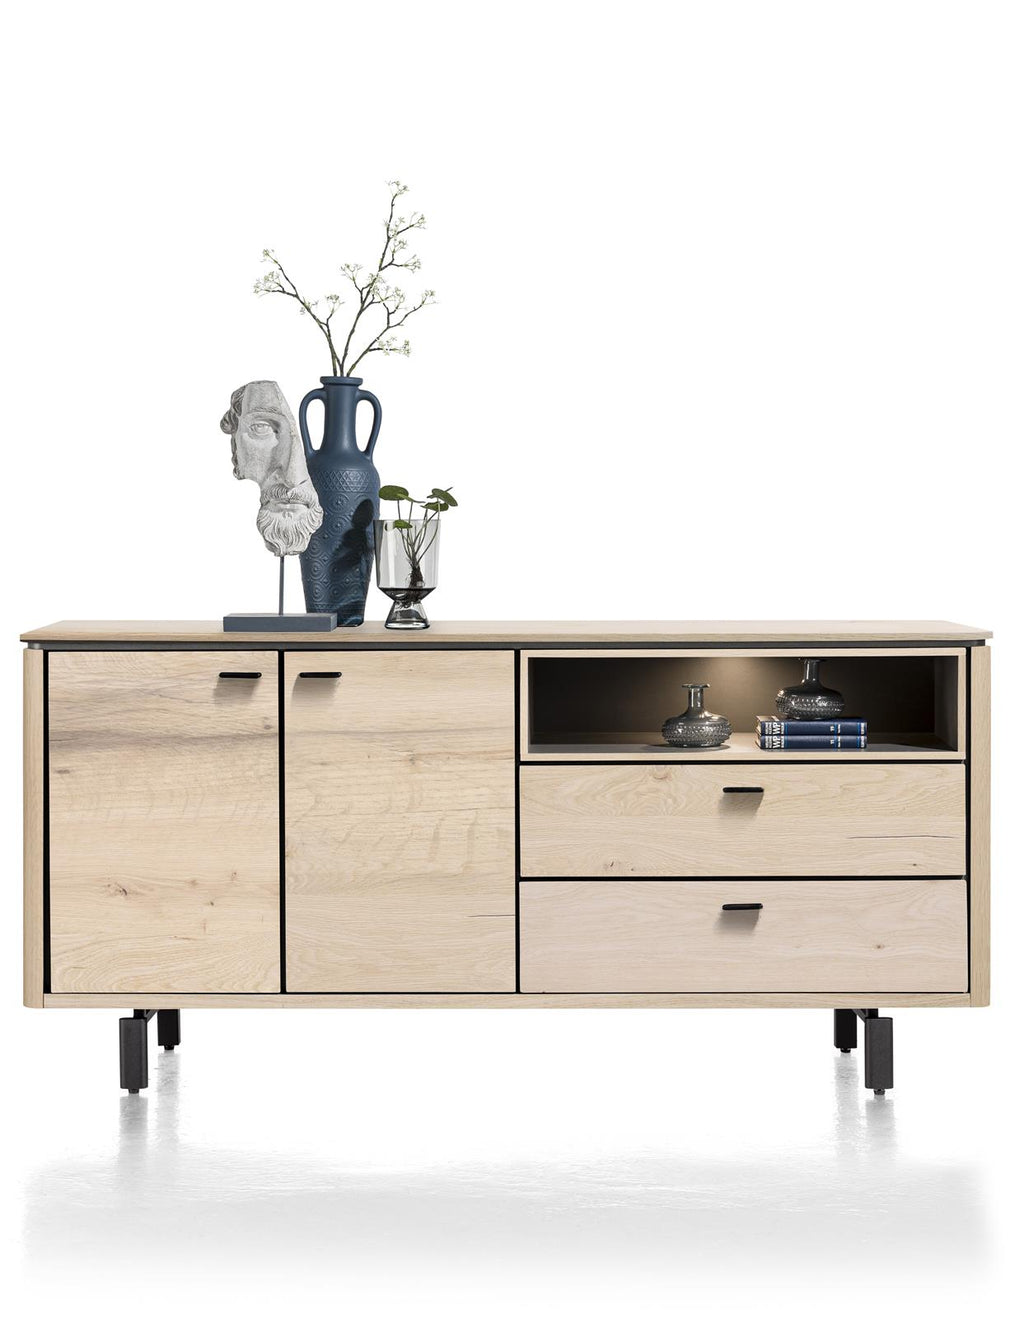 Livada Moreni Bespoke Sideboards in Four Colours